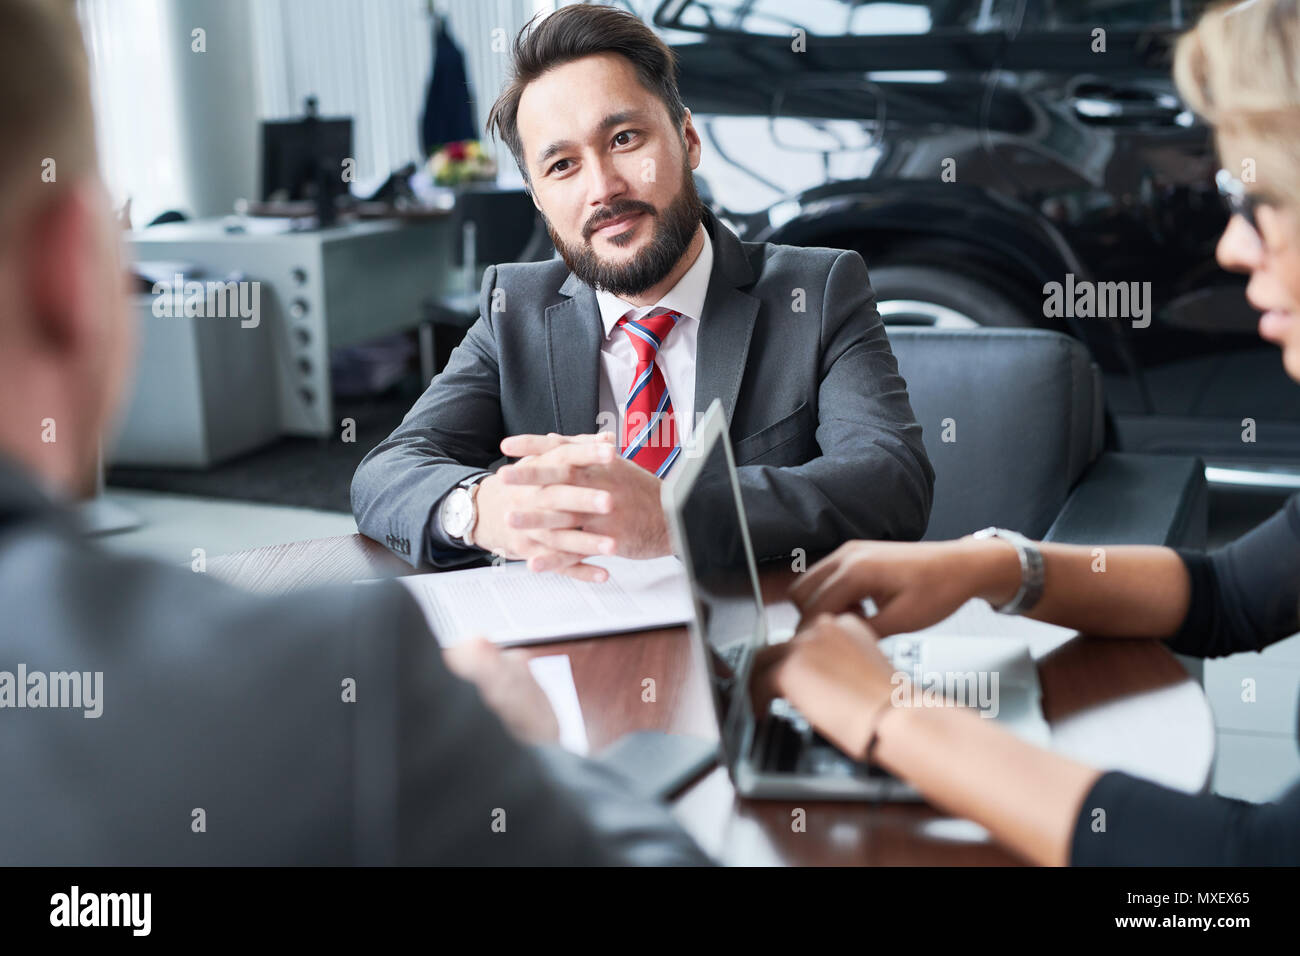 Colleagues Brainstorming on Sales Growth - Stock Image